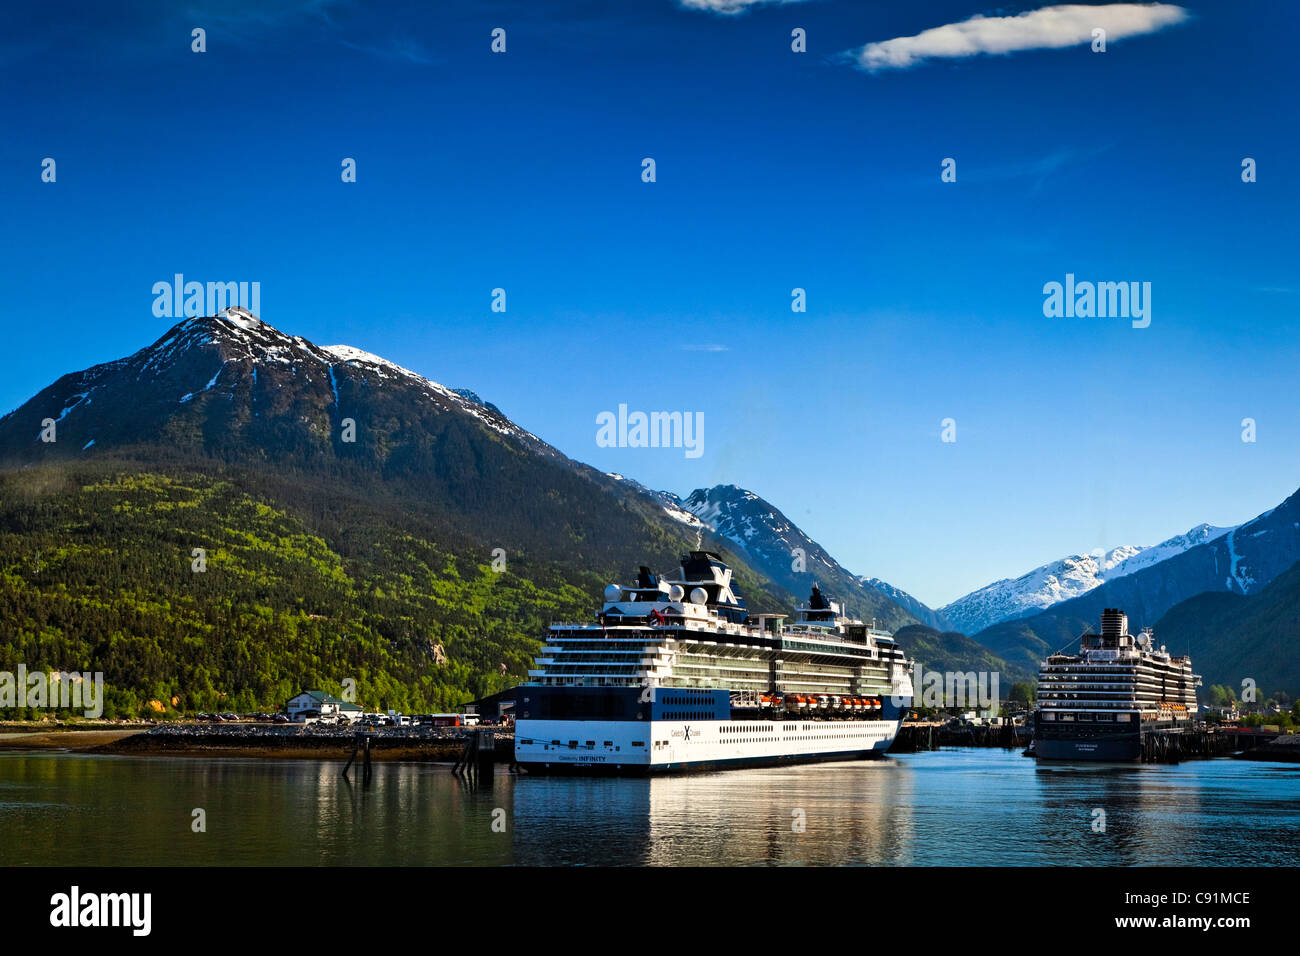 Alaska Marine Highway ferry moored next to a Celebrity Cruises cruise ship at the port of Skagway, Southeast Alaska, - Stock Image